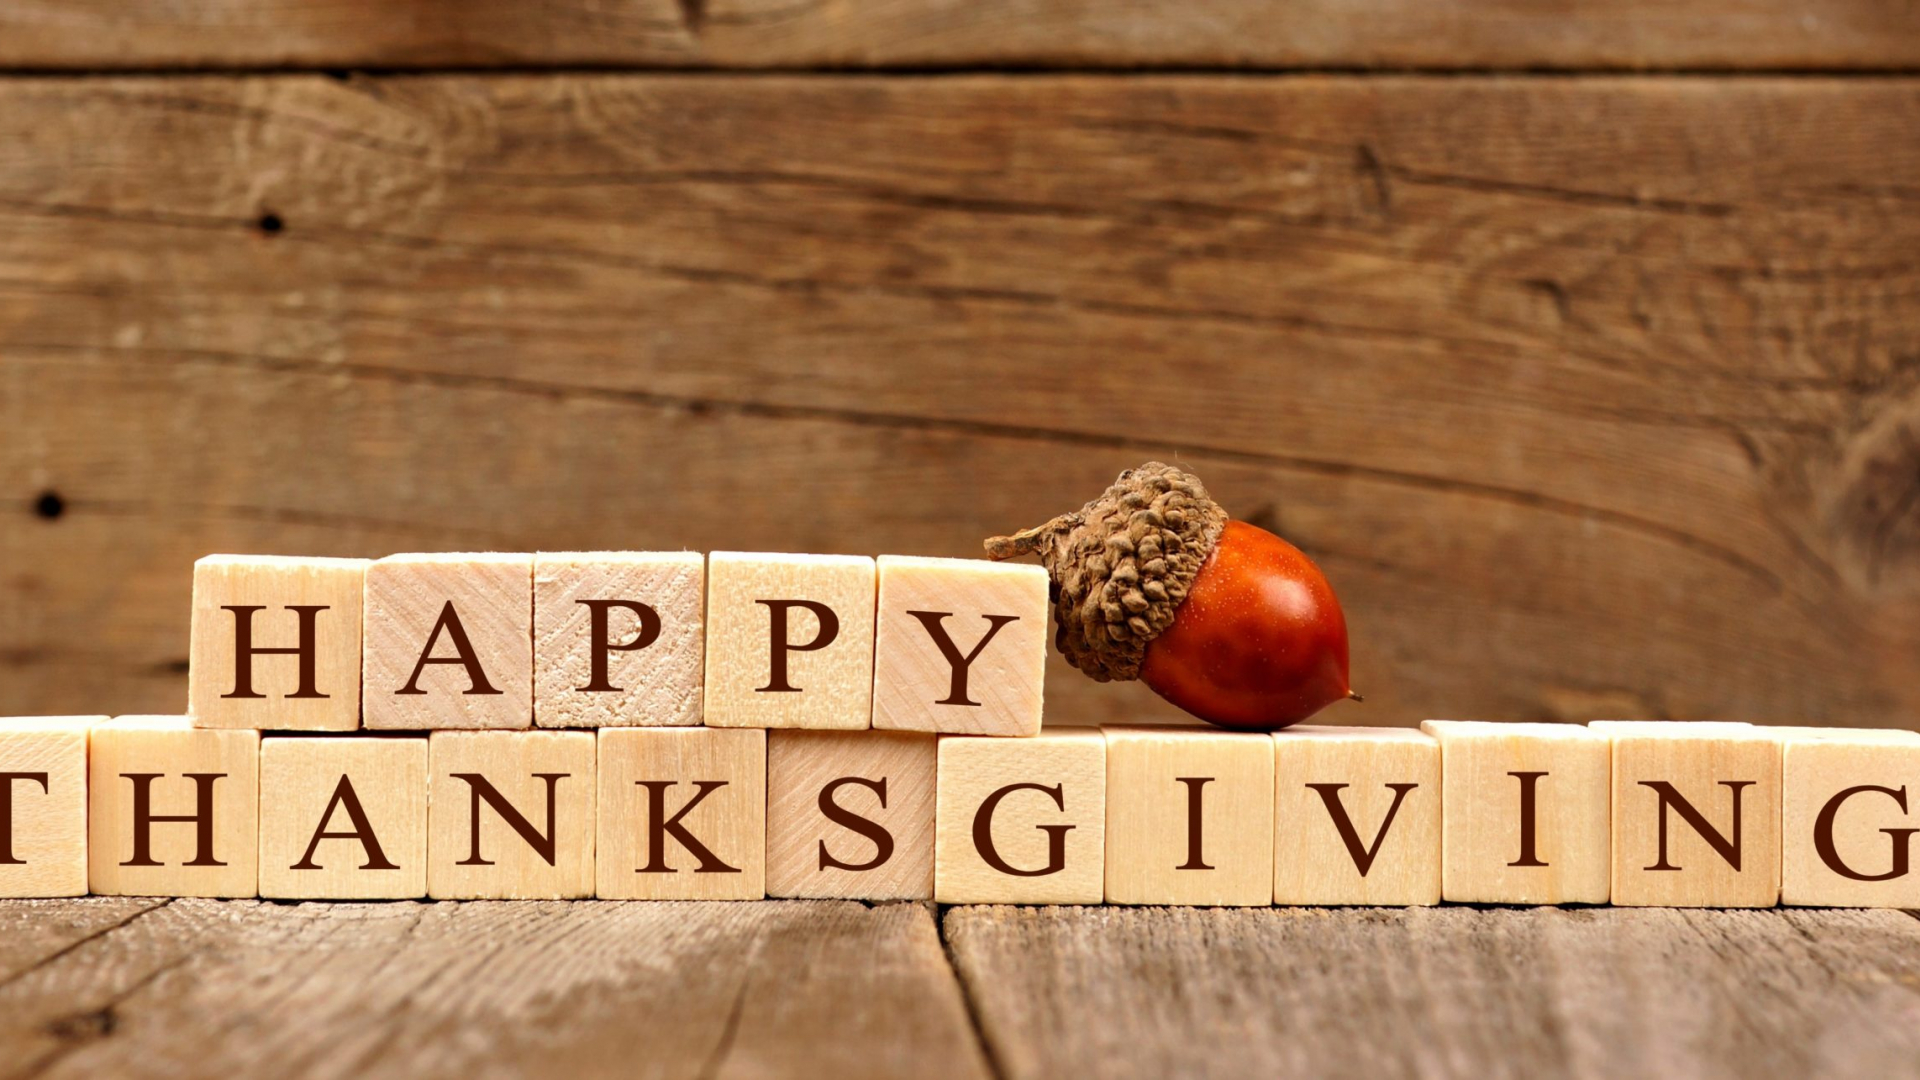 Free Download Happy Thanksgiving Wooden Blocks Against A